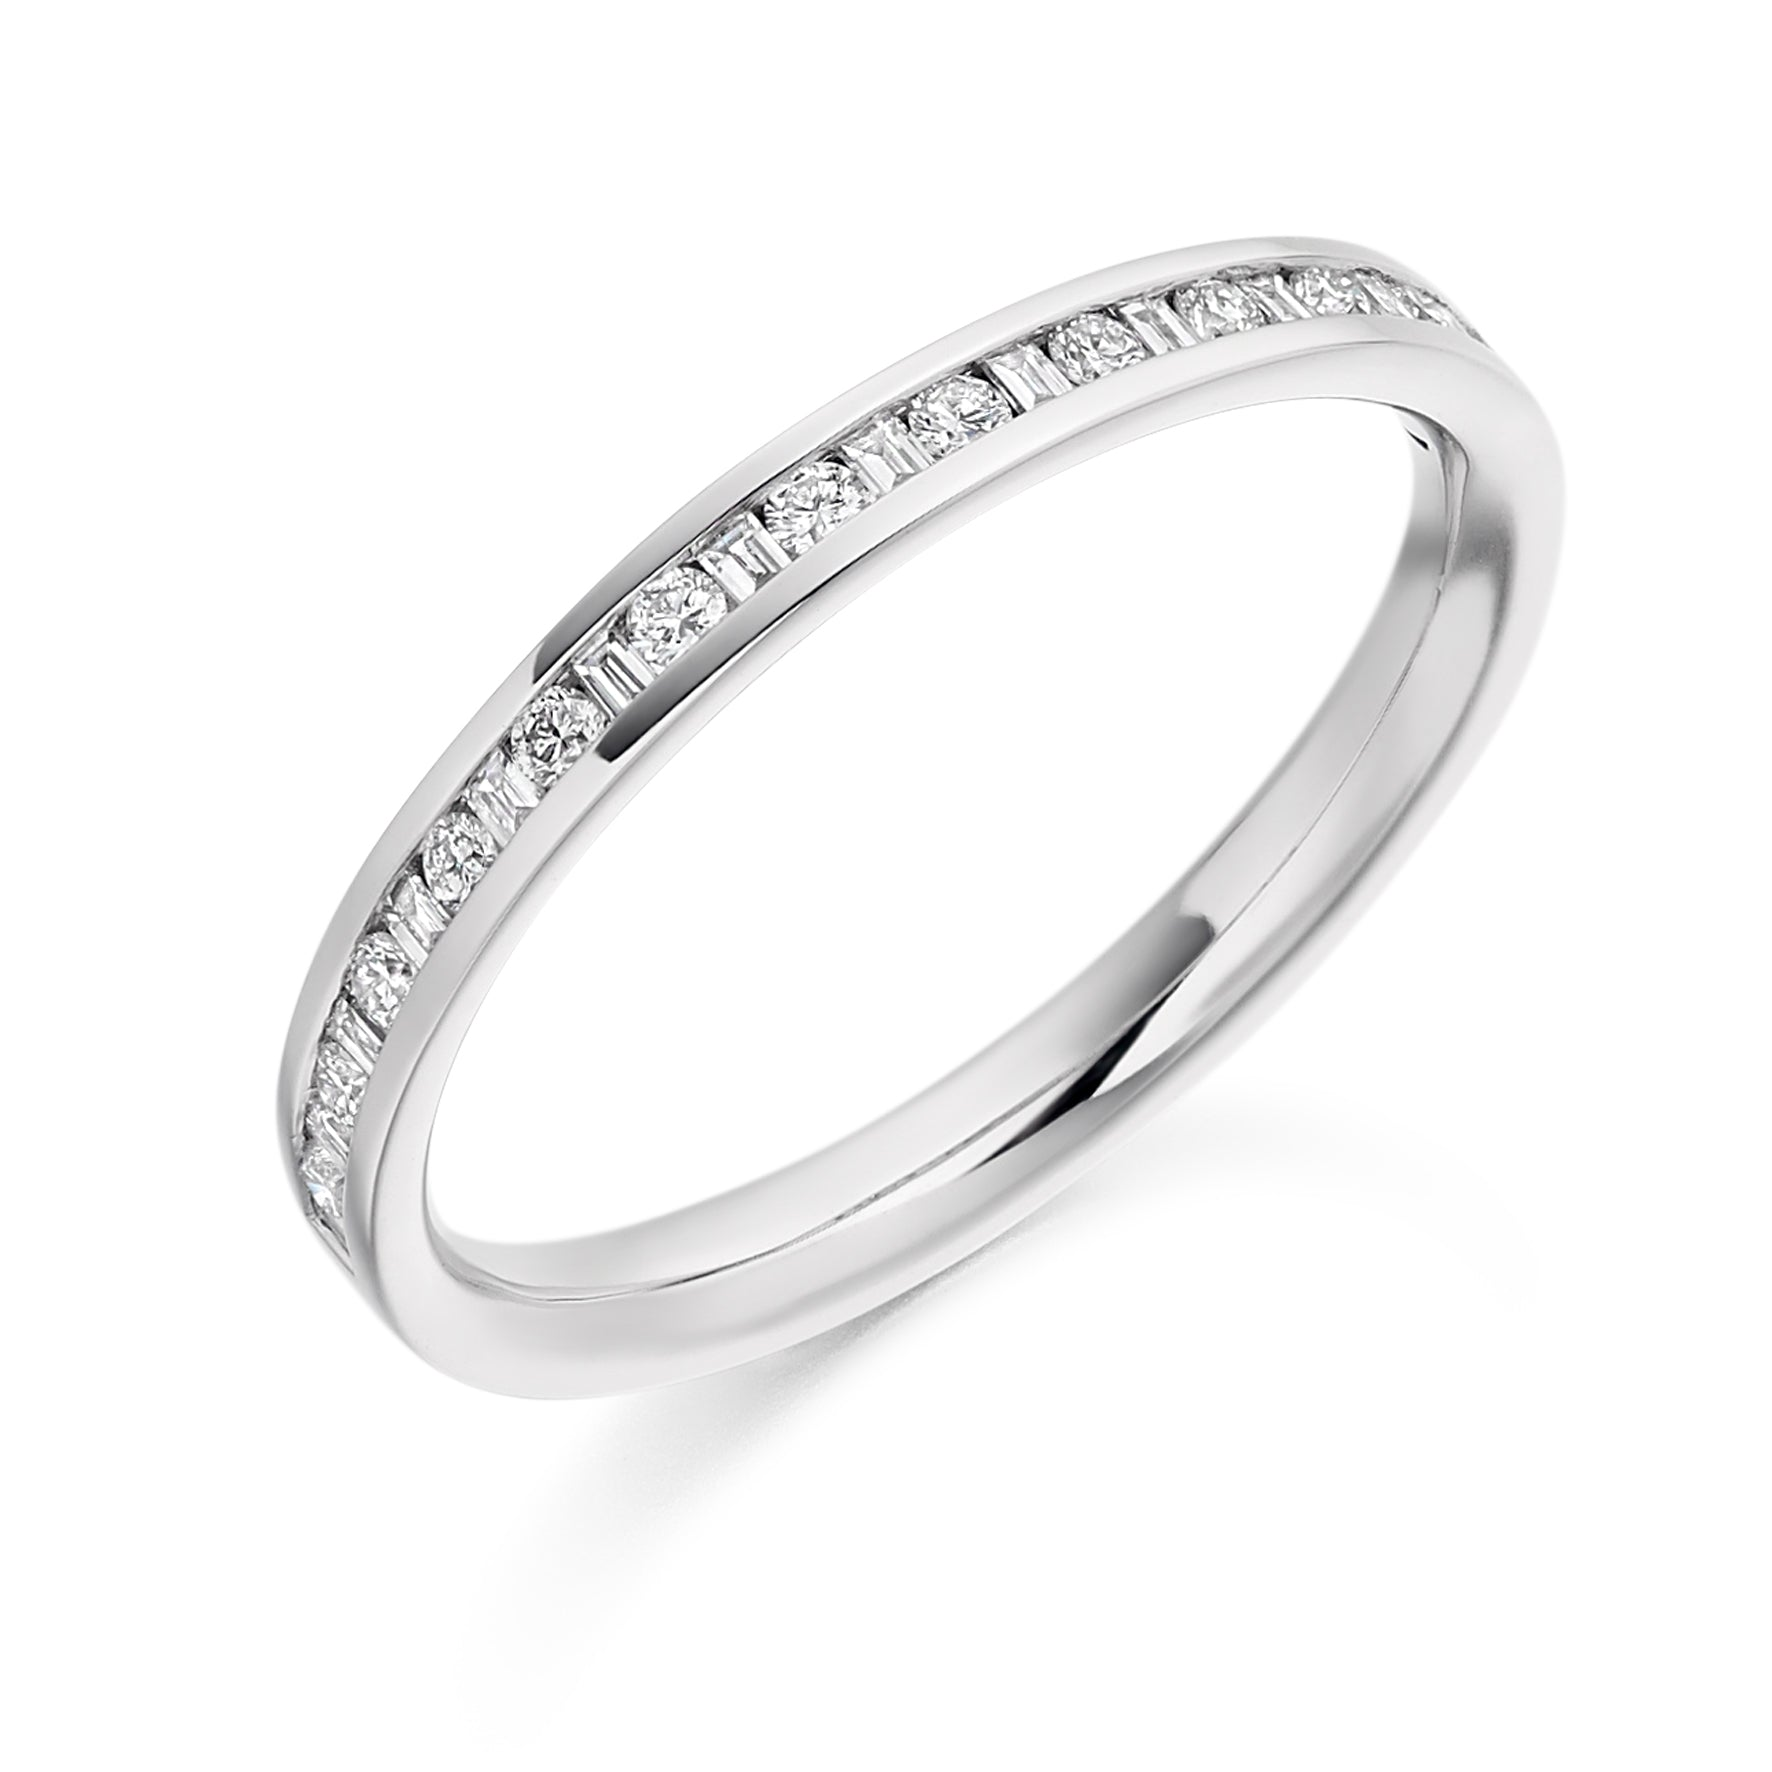 0.30ct Round Brilliant Cut and Baguette Cut Diamonds Eternity Ring - (Home Try-On)